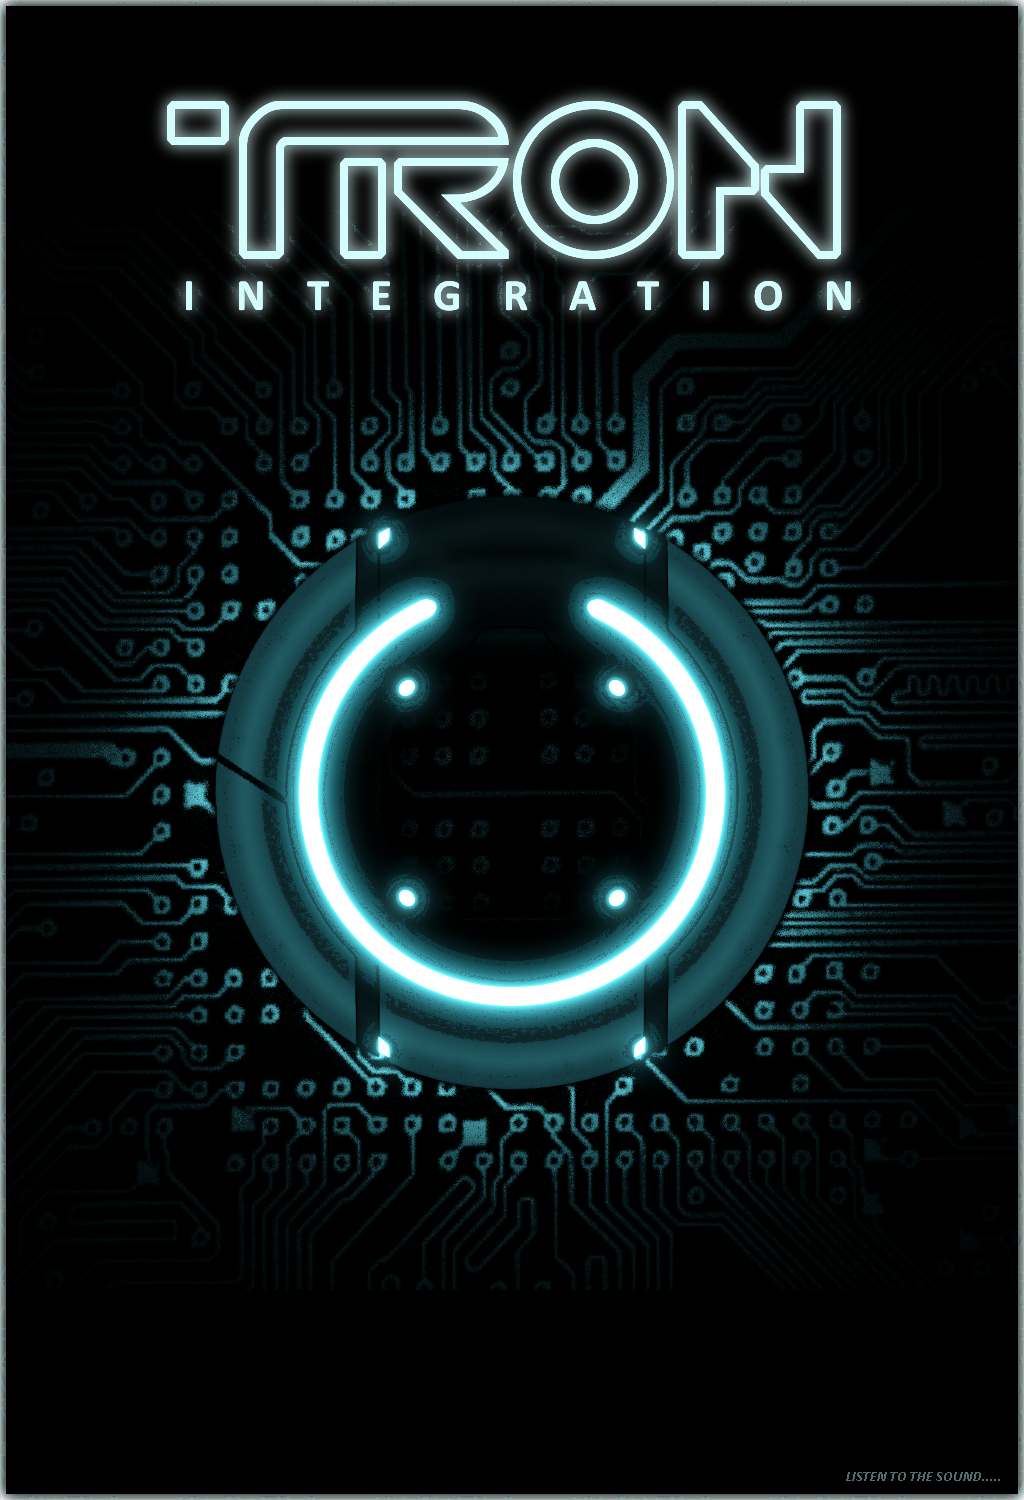 Tron: Integration Comics *UPDATED 2/8/2019* by ReverendTek